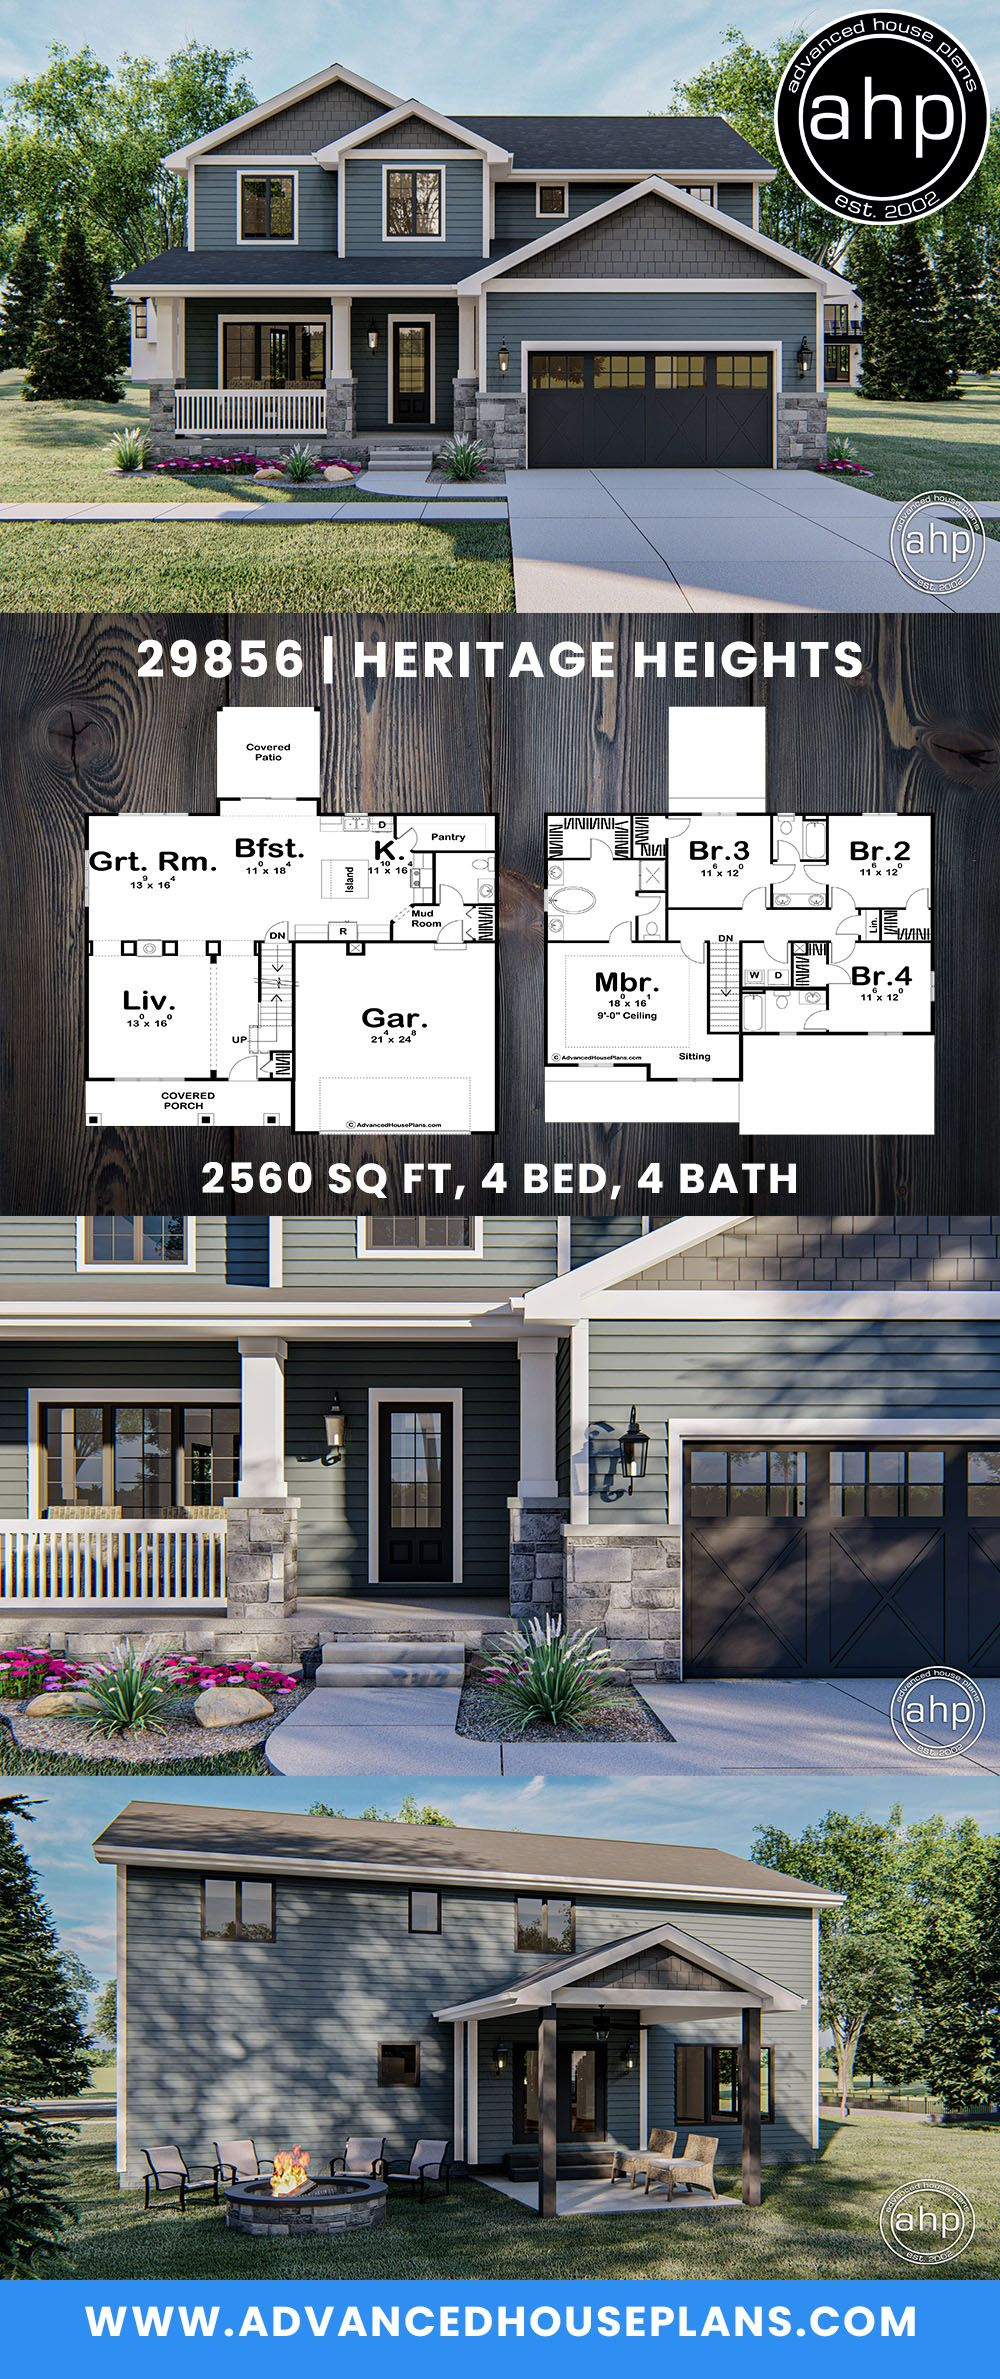 2 Story Craftsman Style House Plan Heritage Heights Craftsman Style House Plans Craftsman House Plans Affordable House Plans